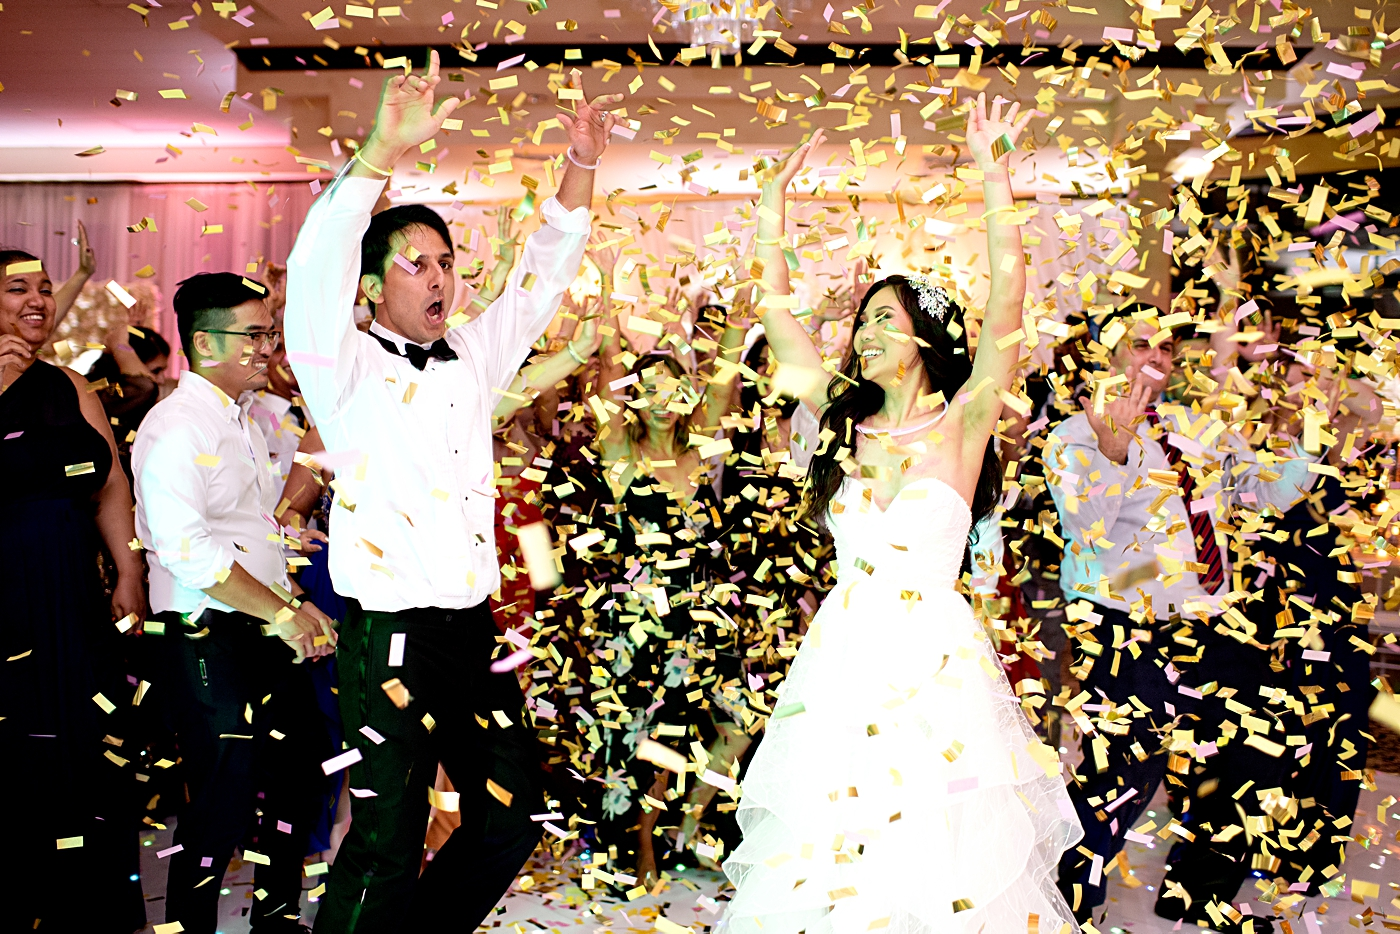 confetti at receptions